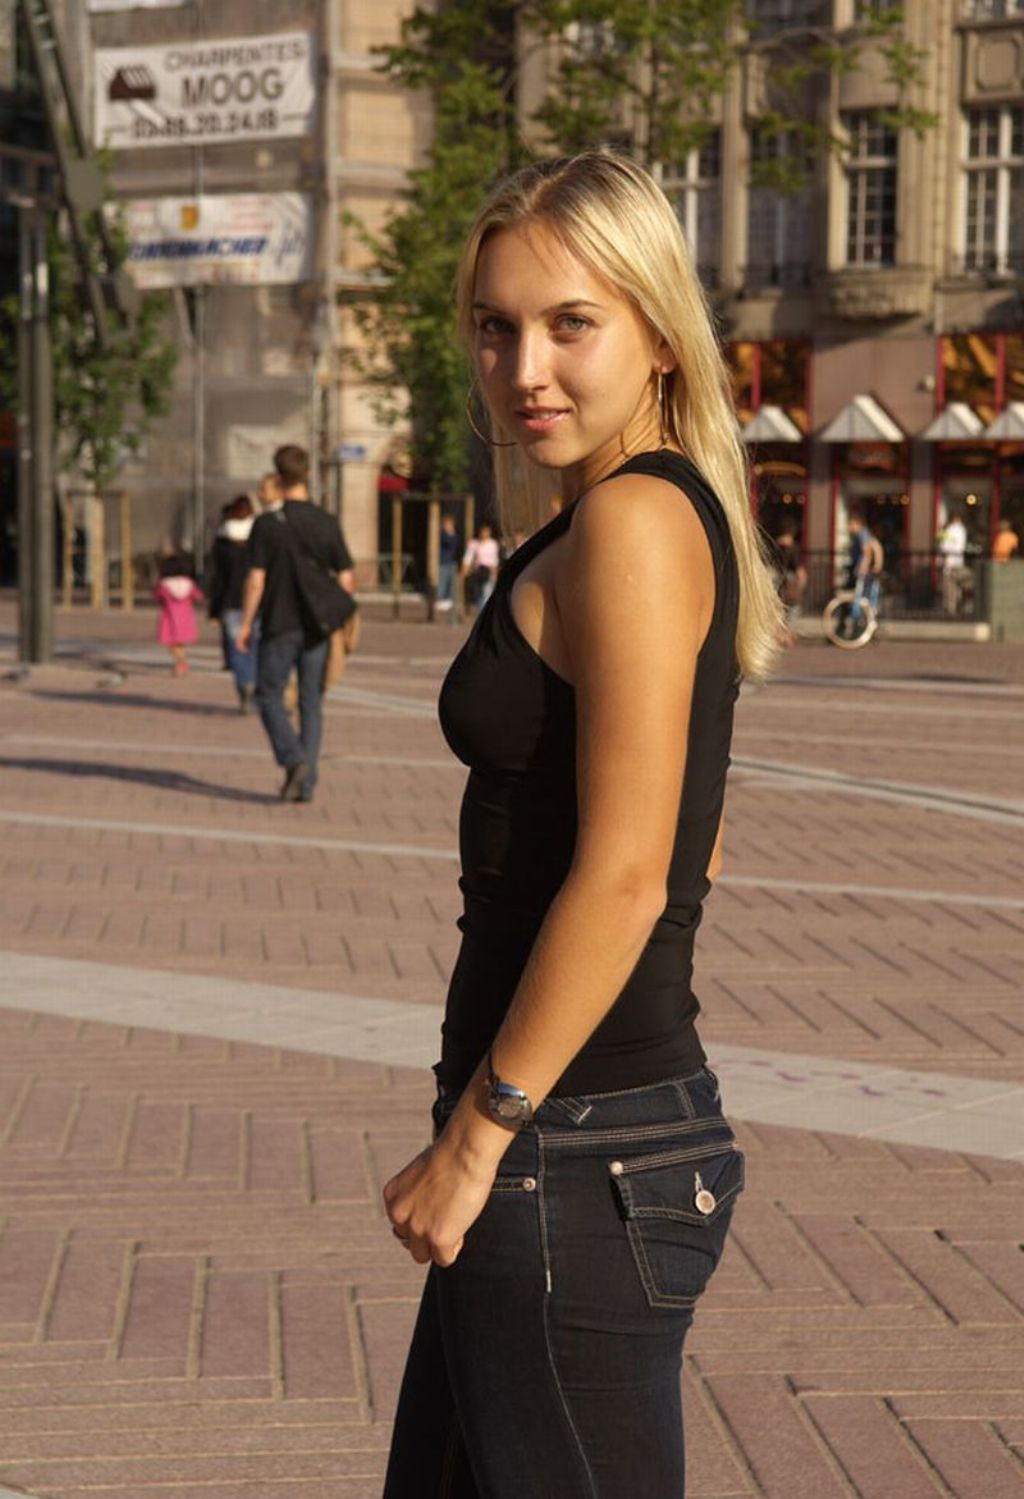 elena vesnina hot photos - photo #6